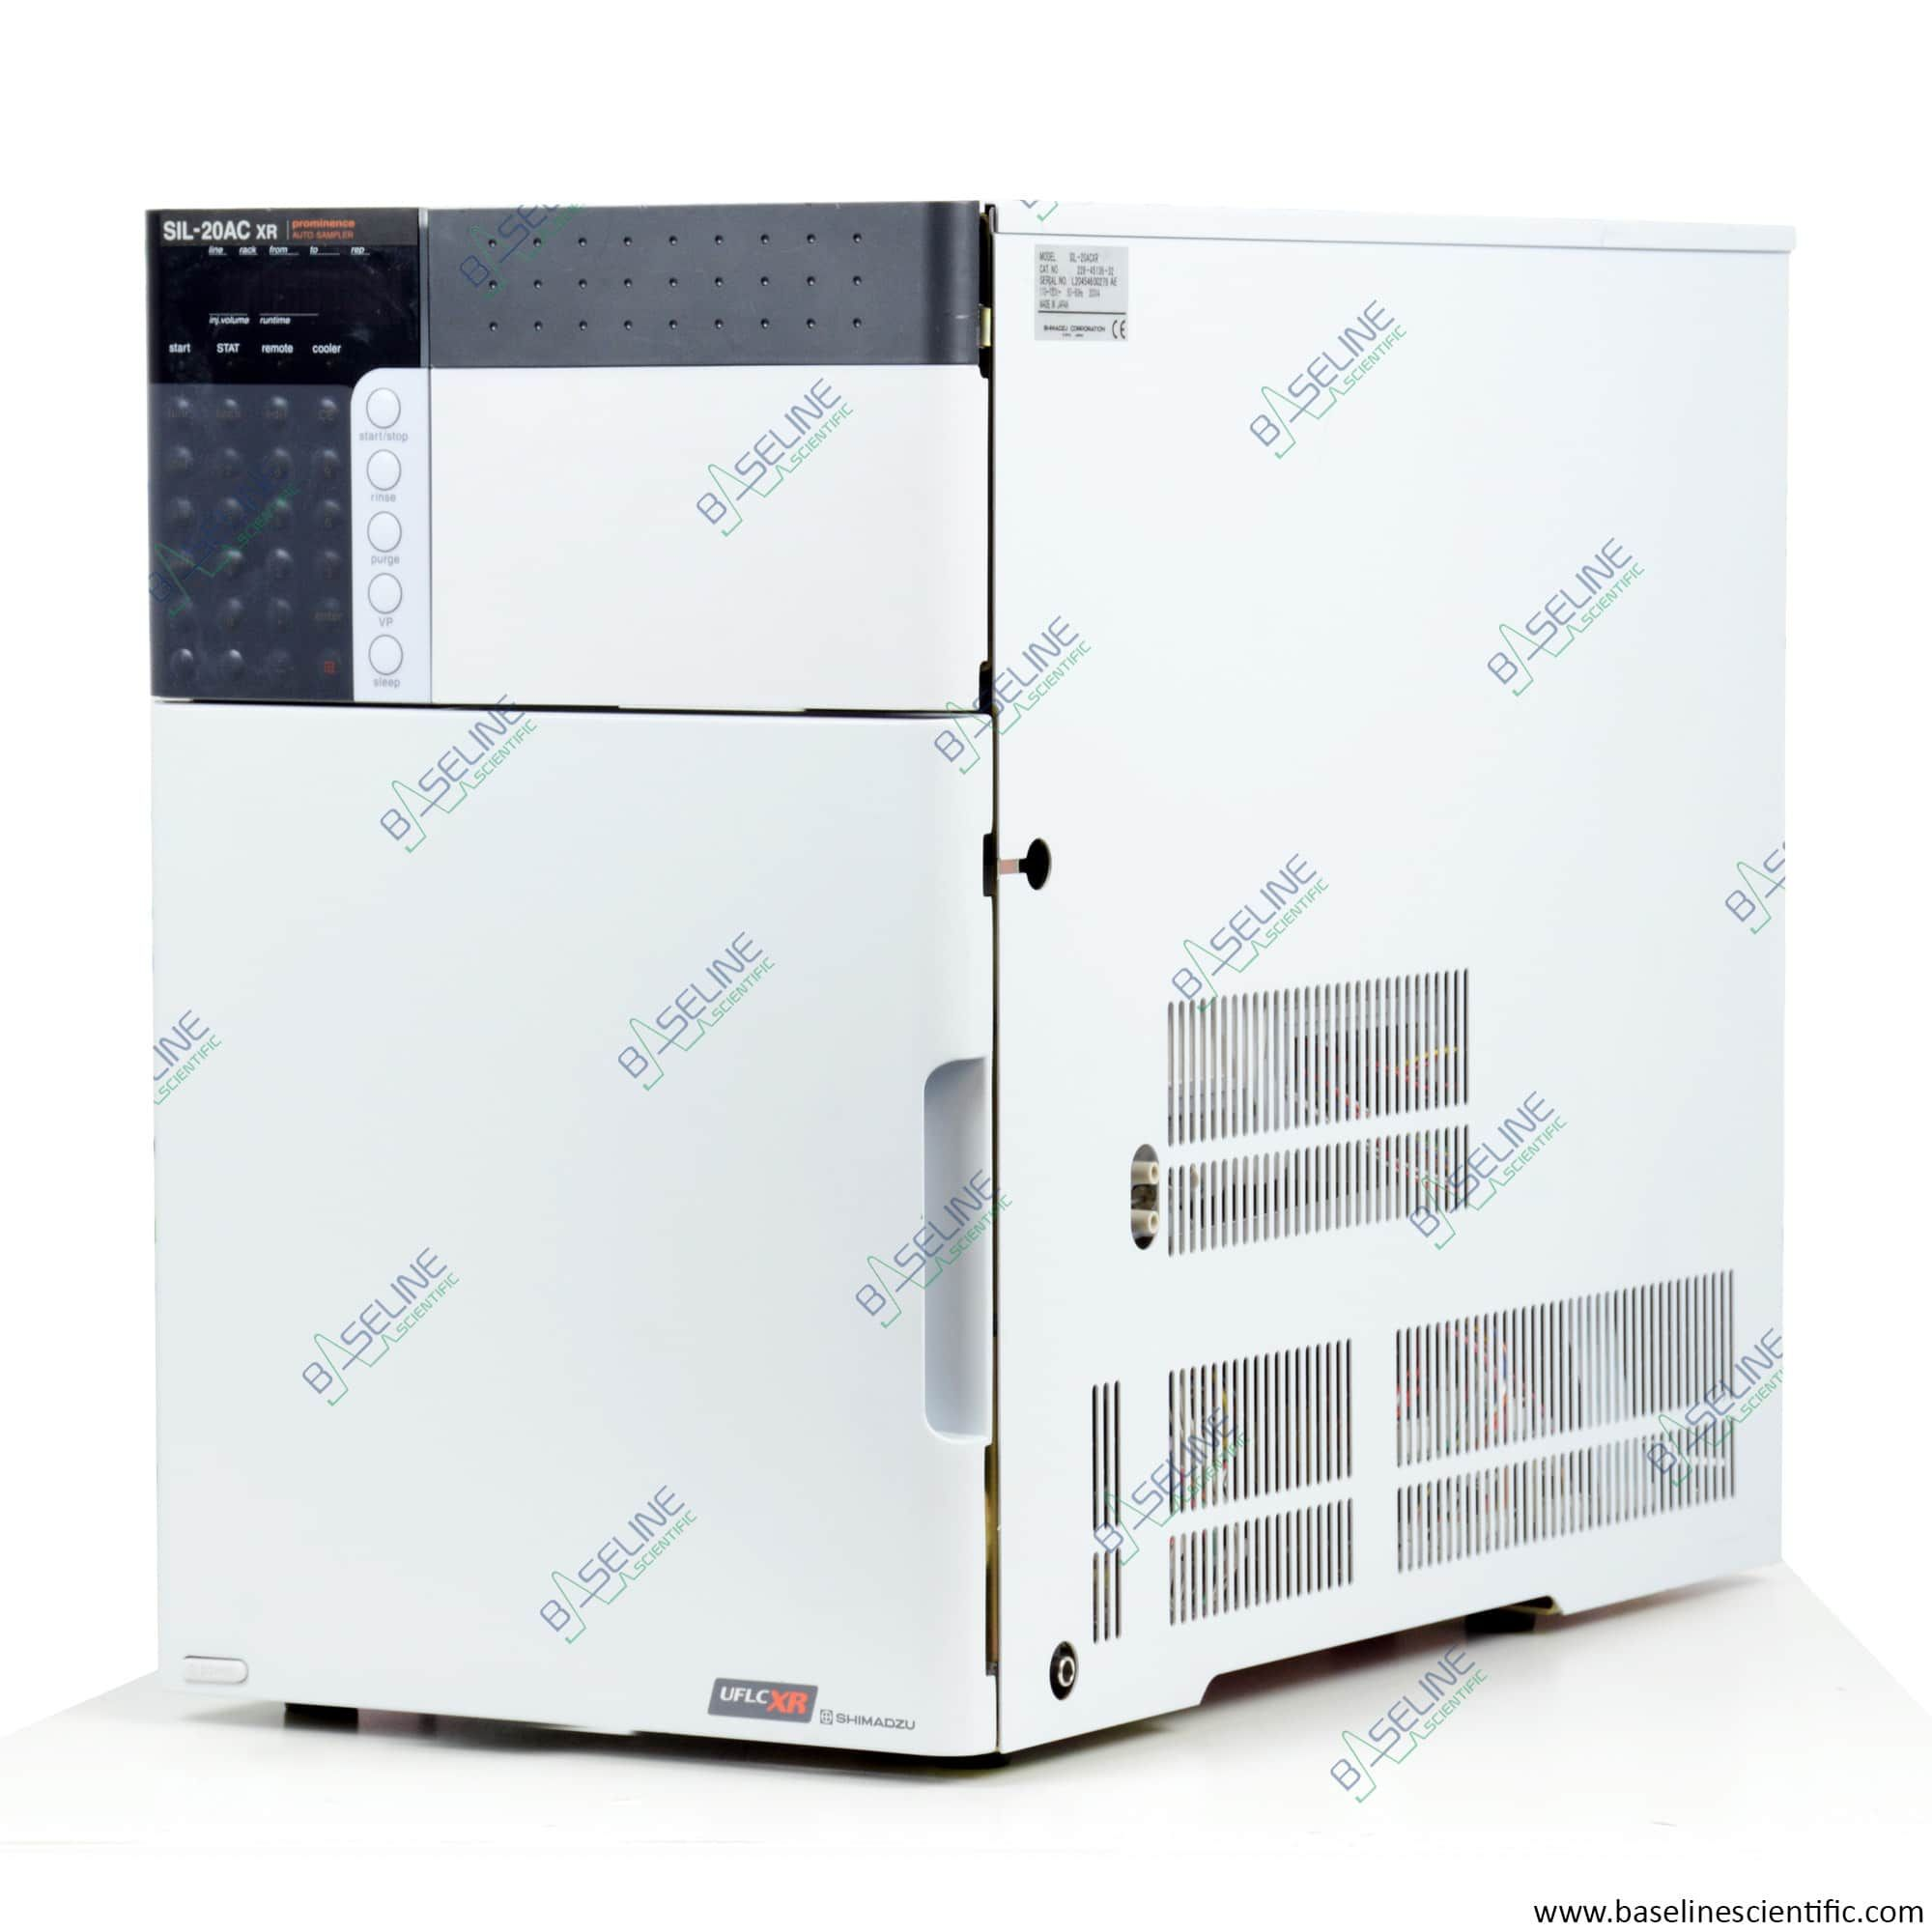 Refurbished Shimadzu SIL-20AC XR Prominence UFLC Autosampler with ONE YEAR WARRANTY